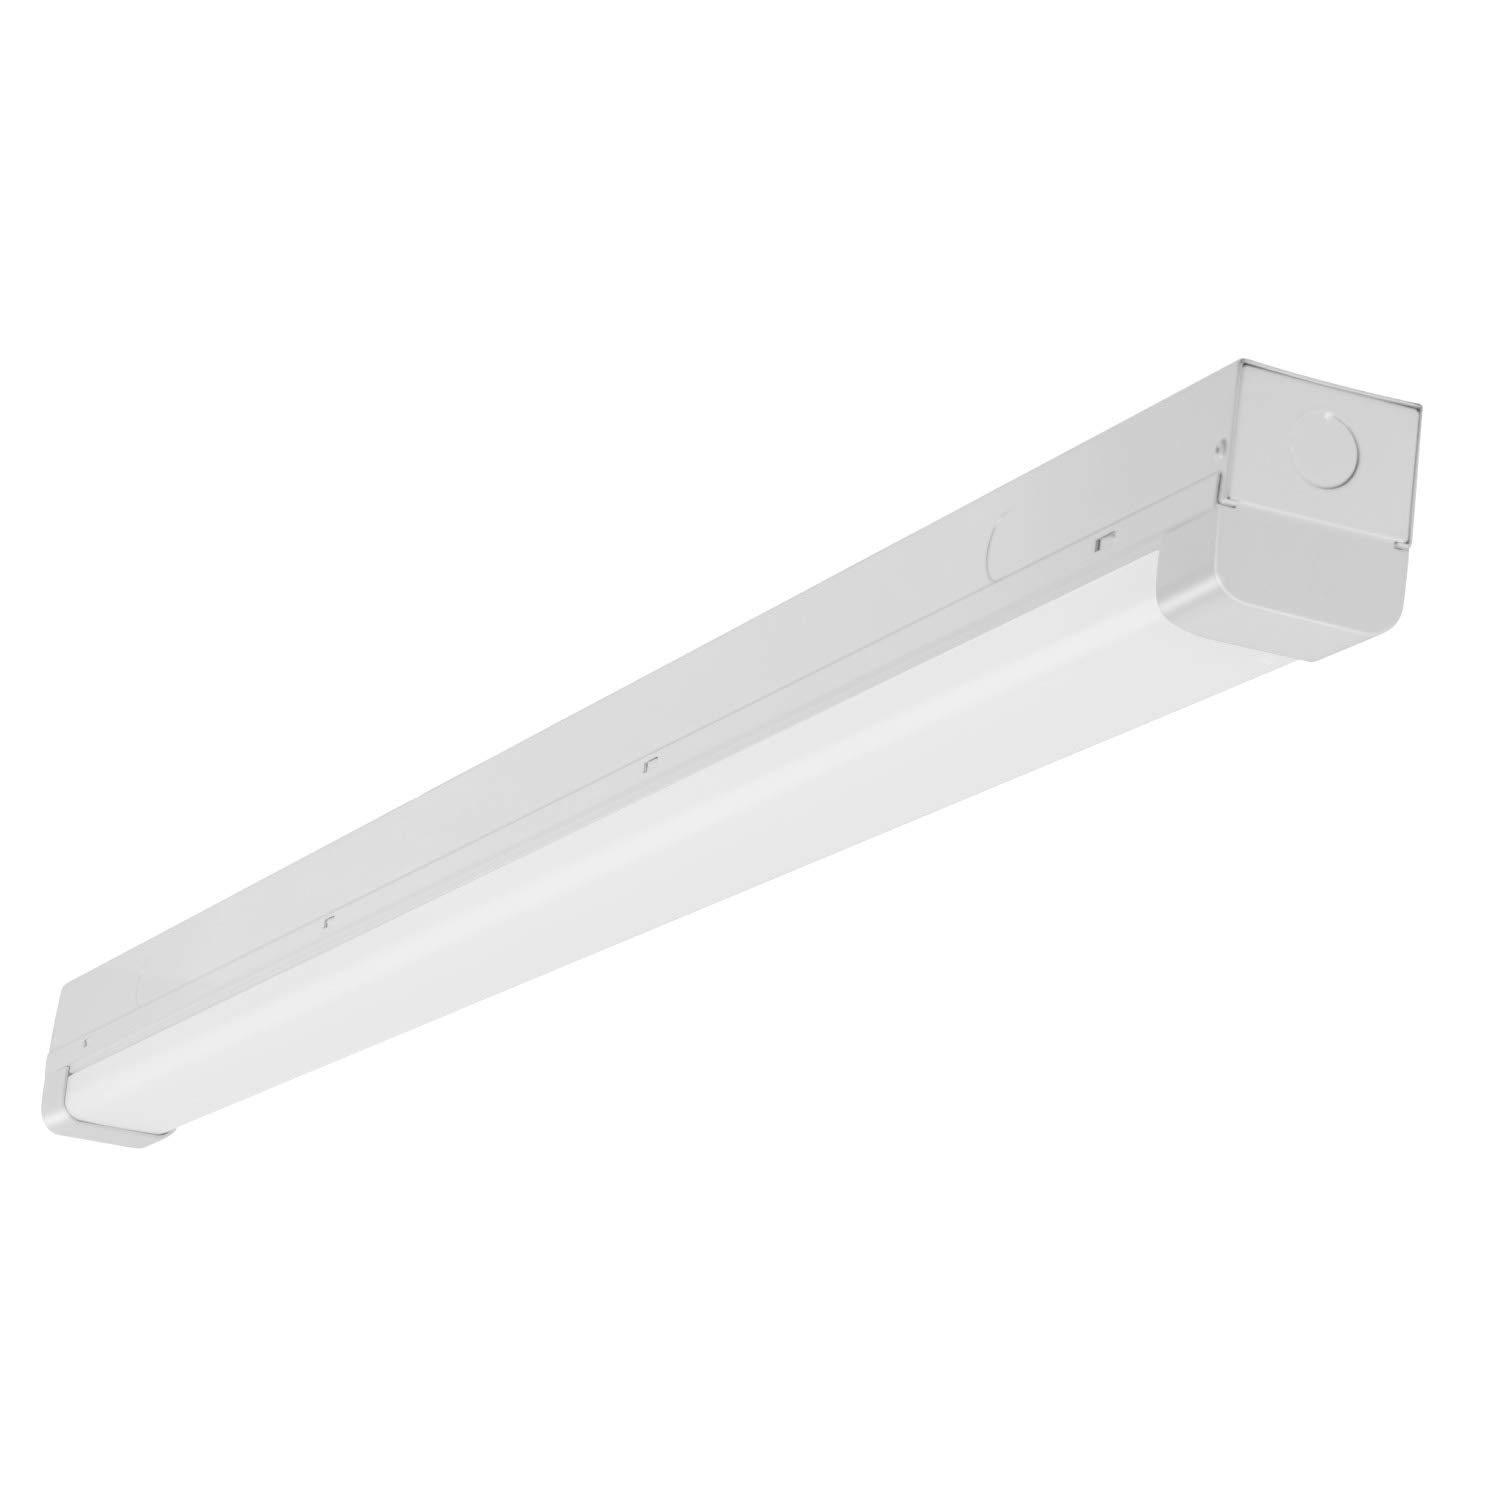 GOOLSUN 4FT LED Garage Shop Light, 38W 5300 Lumens, LED Wraparound Ceiling Light Fixture, 5000K Daylight White, LED Linear Flushmount Lighting, DLC Premium 4.2 Qualified, 150W Fluorescent Replacement